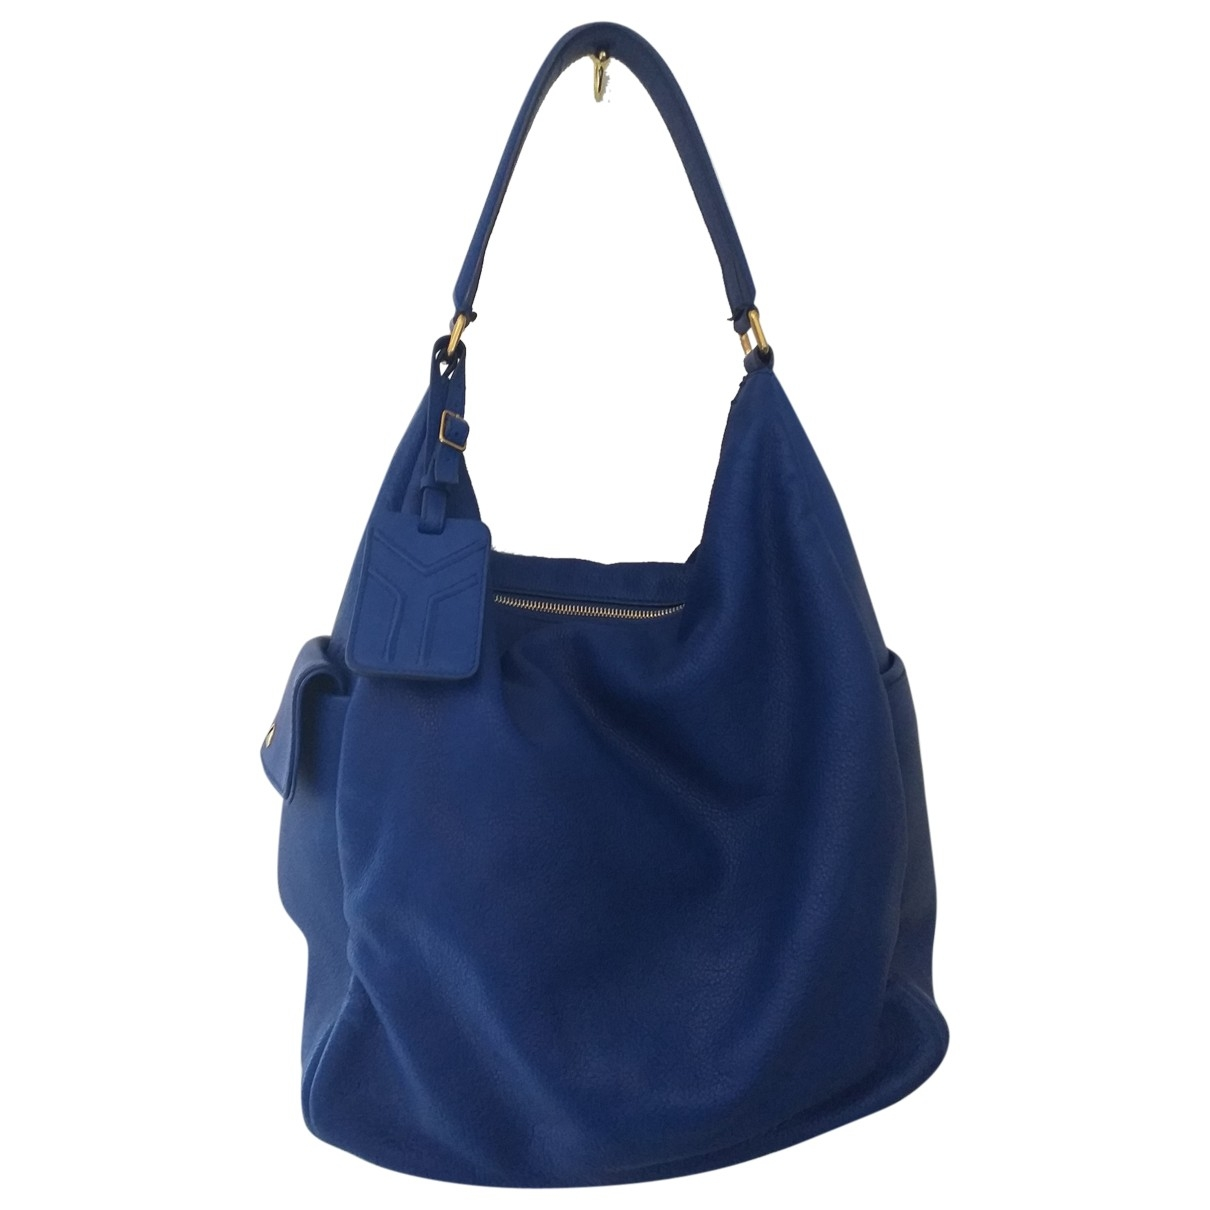 Yves Saint Laurent \N Handtasche in  Blau Leder